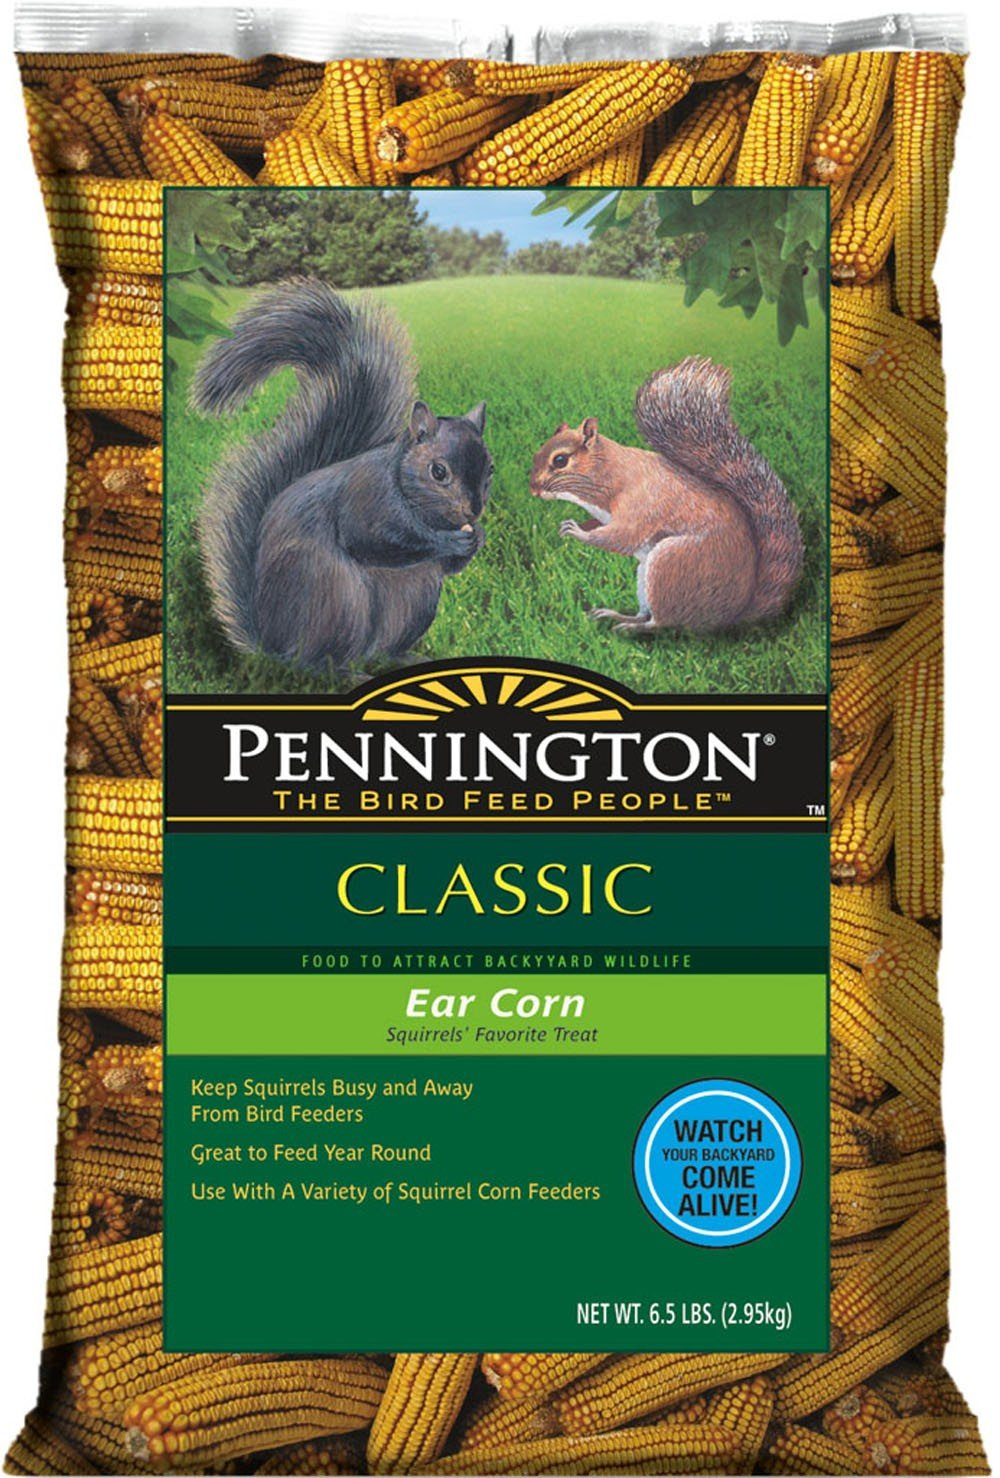 Pennington Ear Corn on Cob Squirrel Food, 6.5-Pound